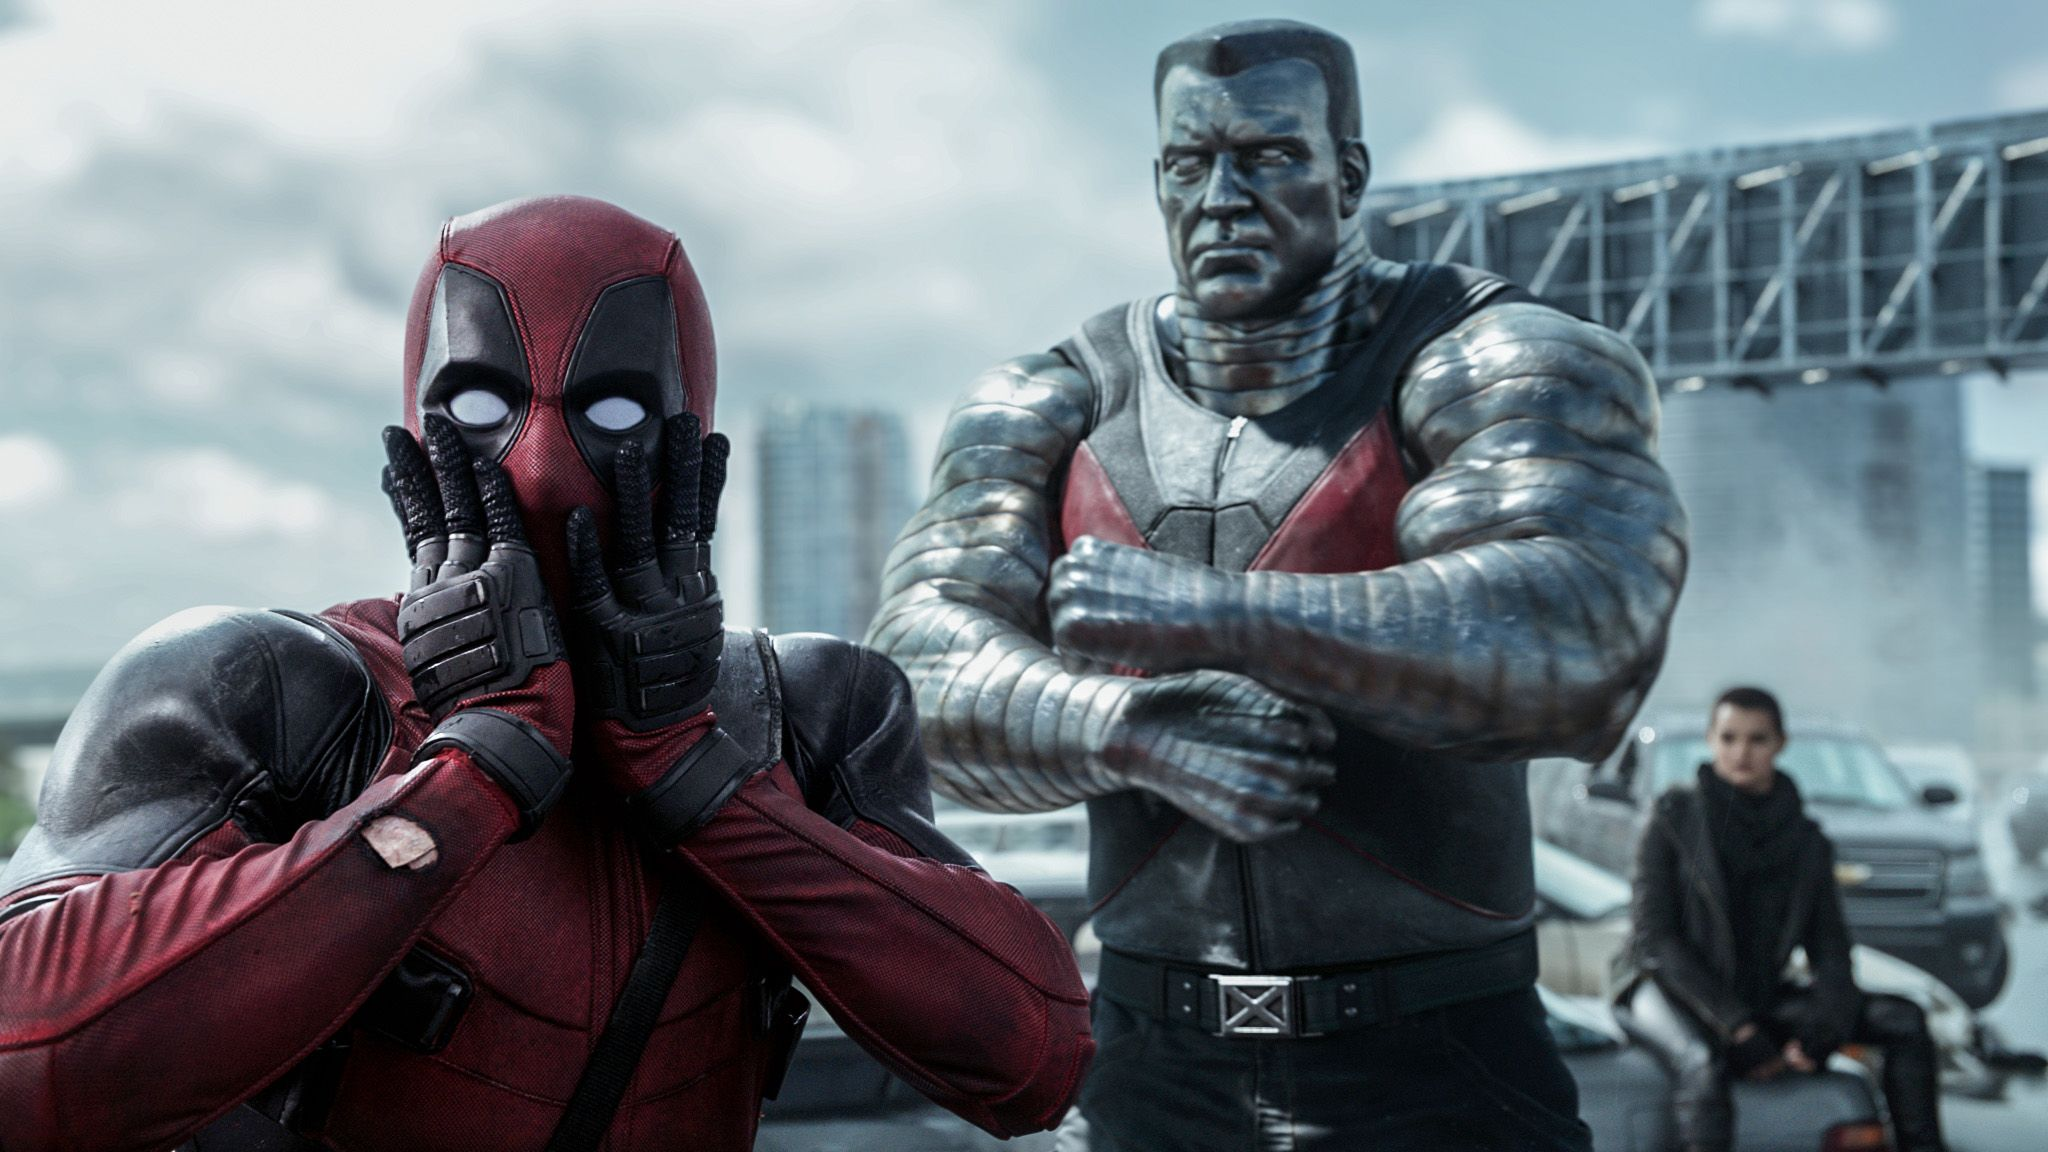 http://cdn.collider.com/wp-content/uploads/2016/02/deadpool-colossus.jpg